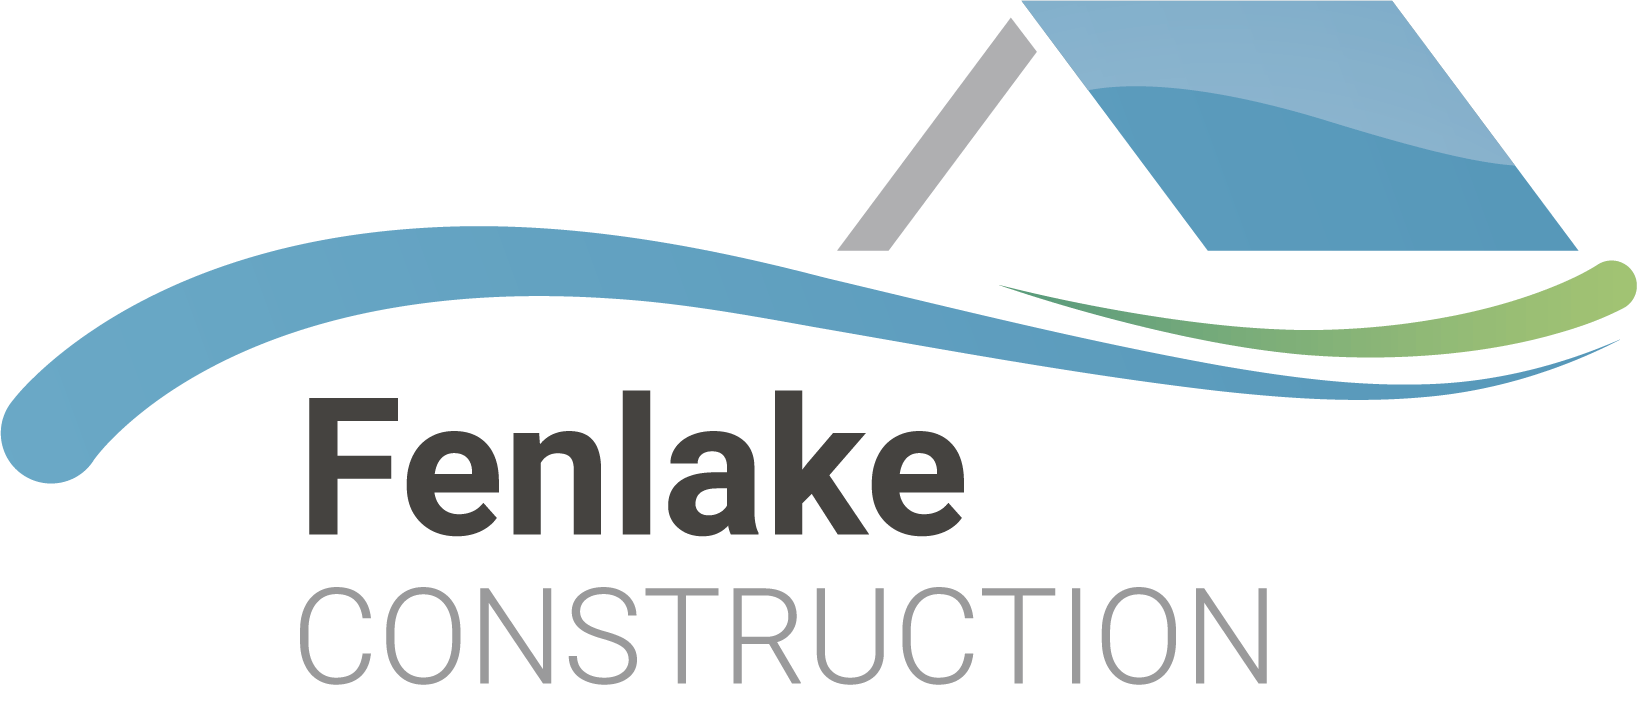 Fenlake Construction